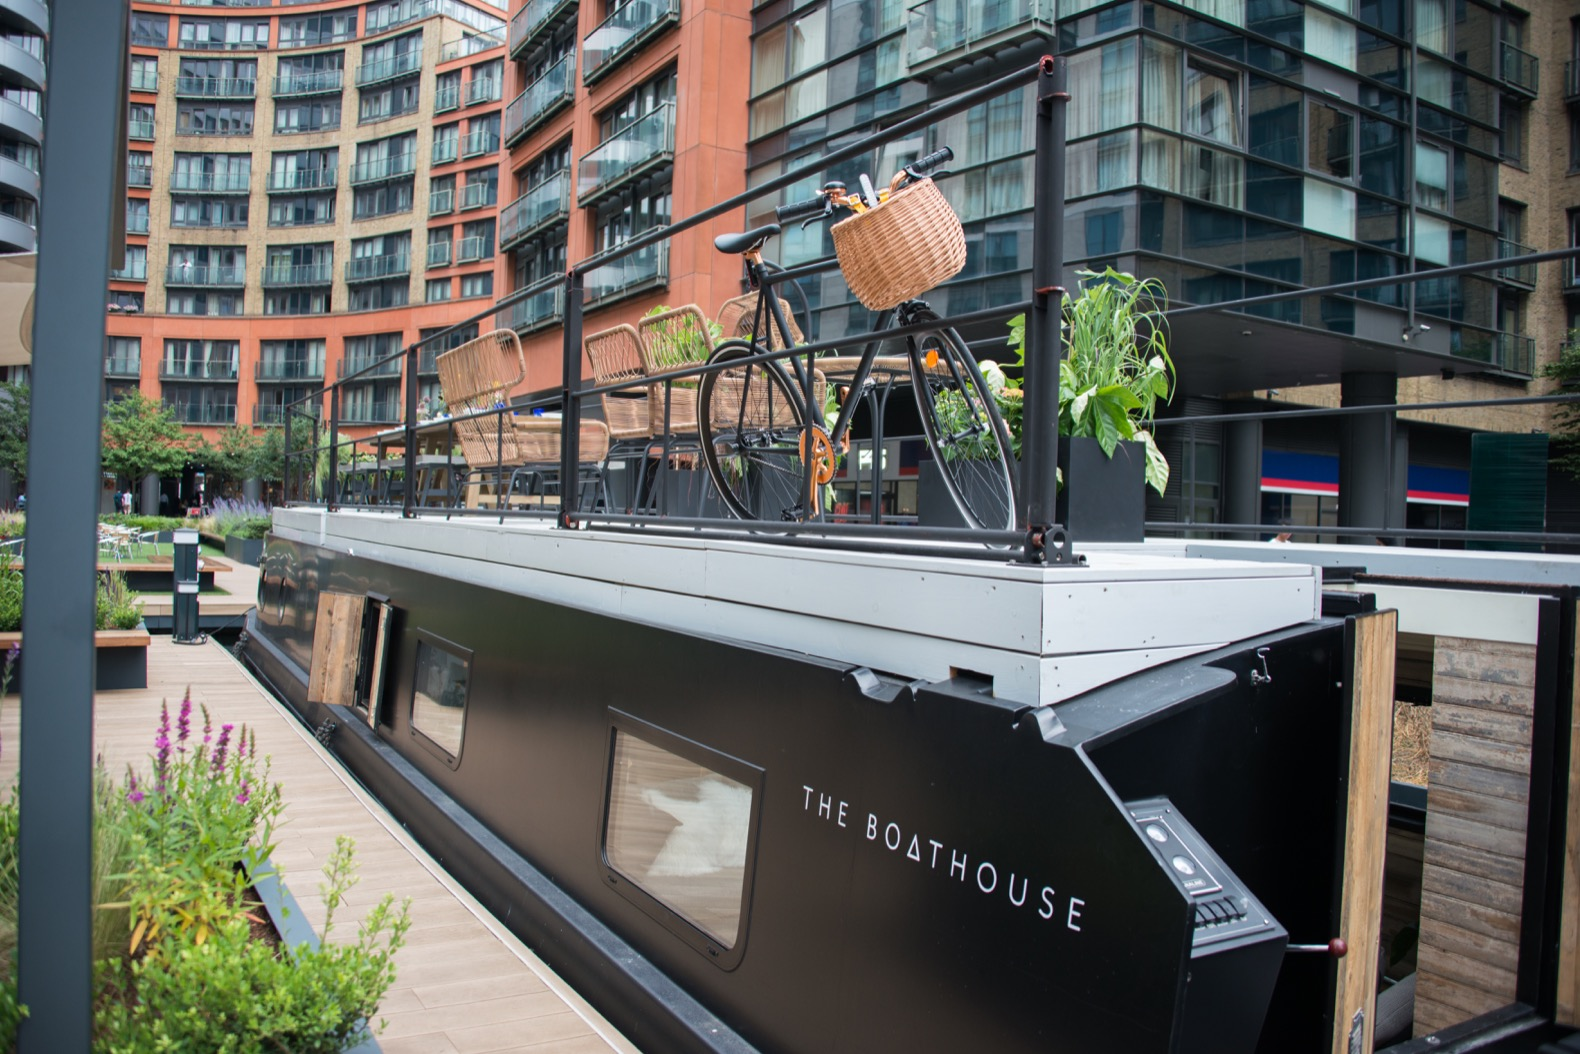 Stow away on this stylish, minimalist floating hotel in London